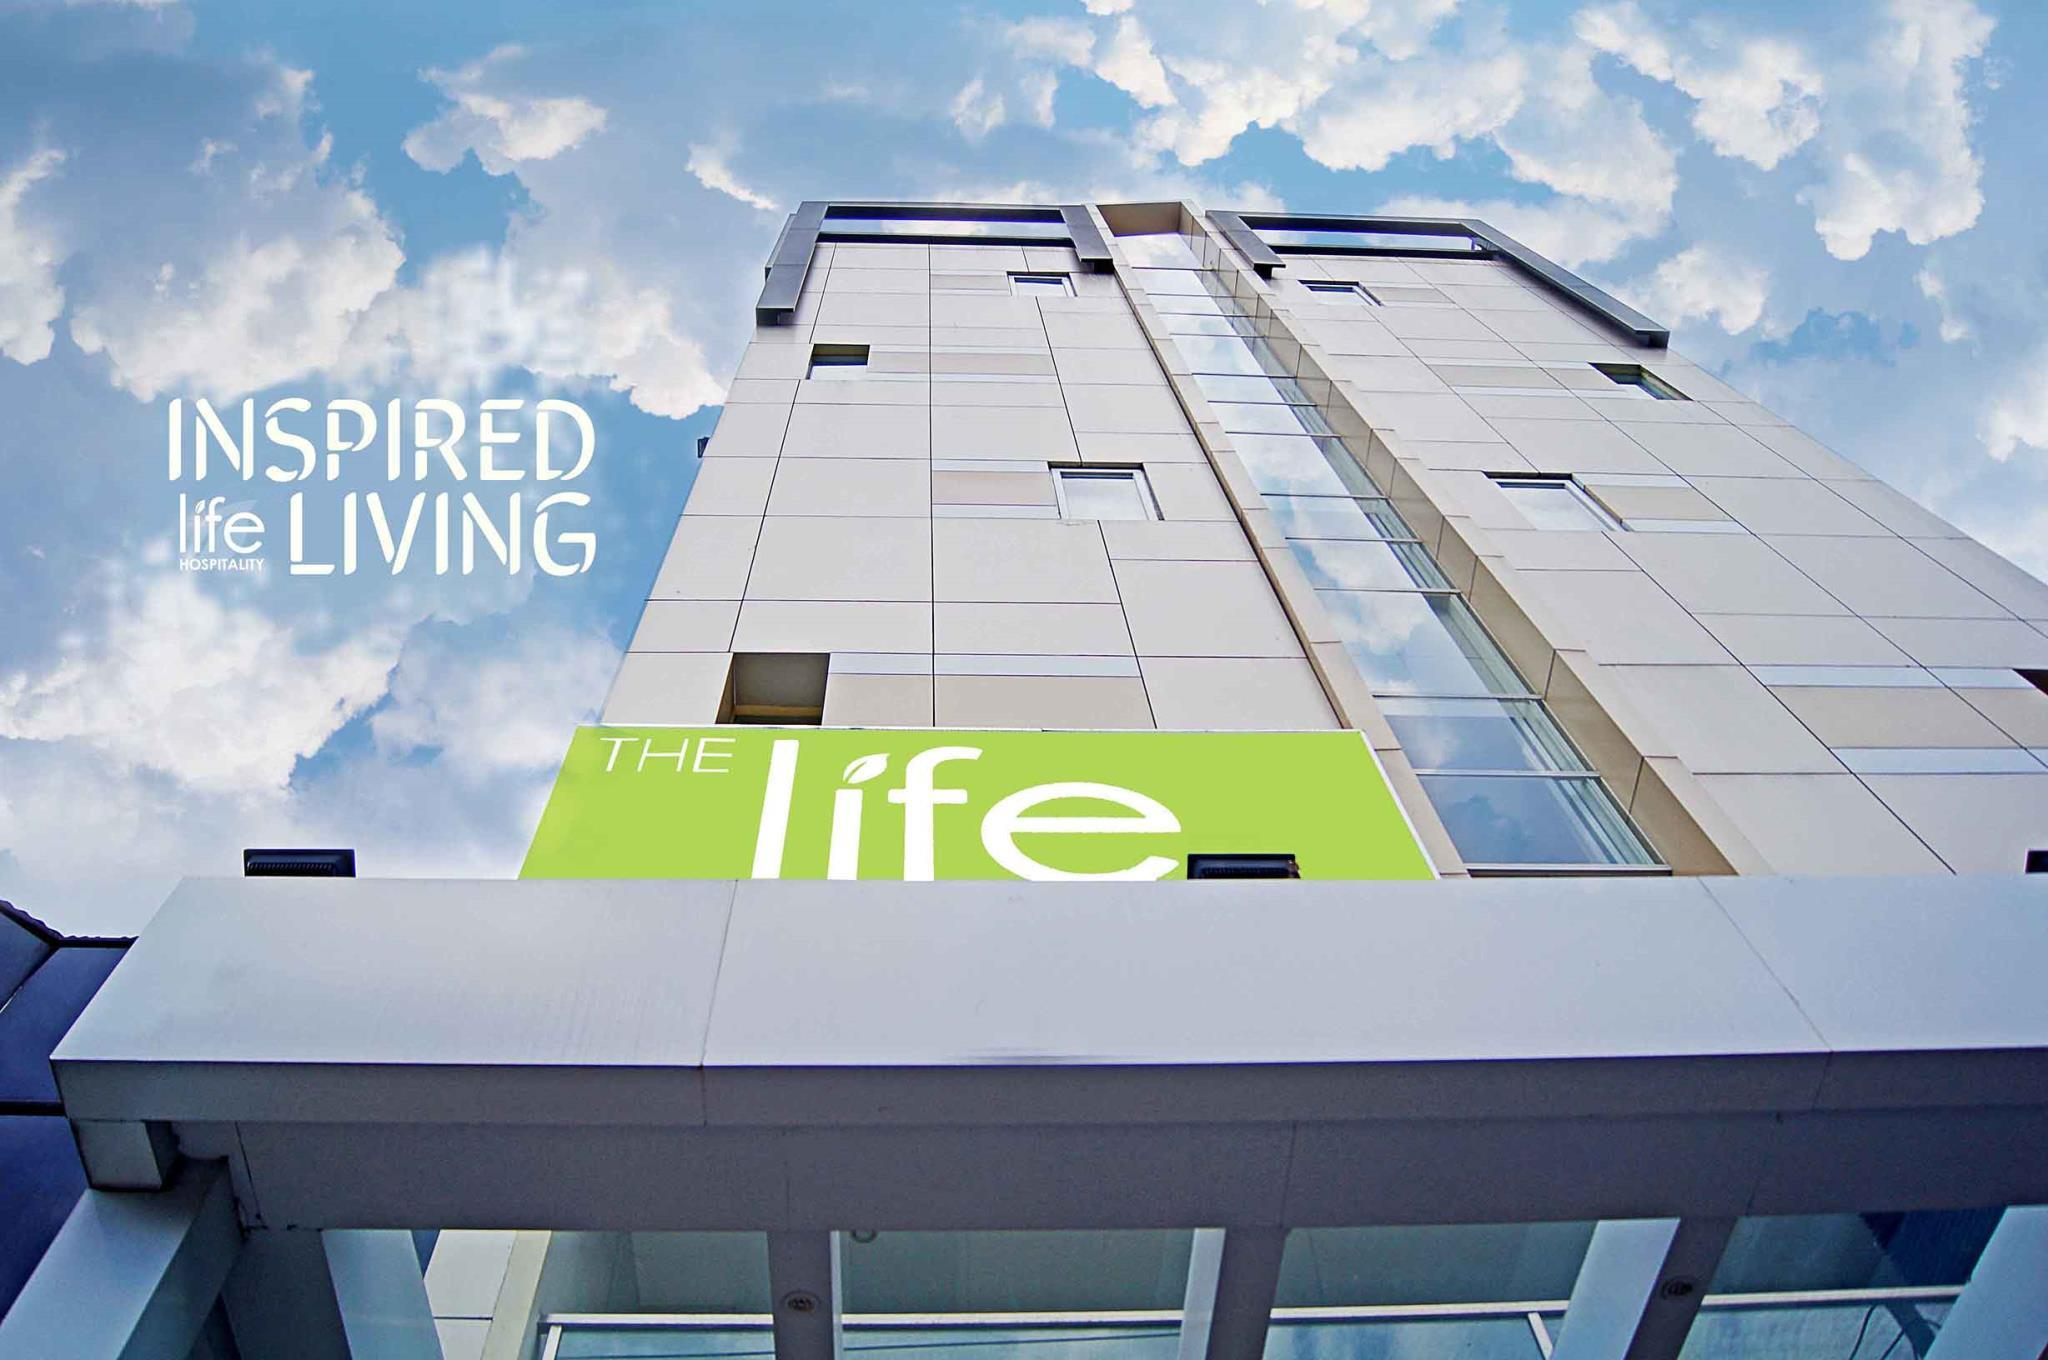 The Life Hotels